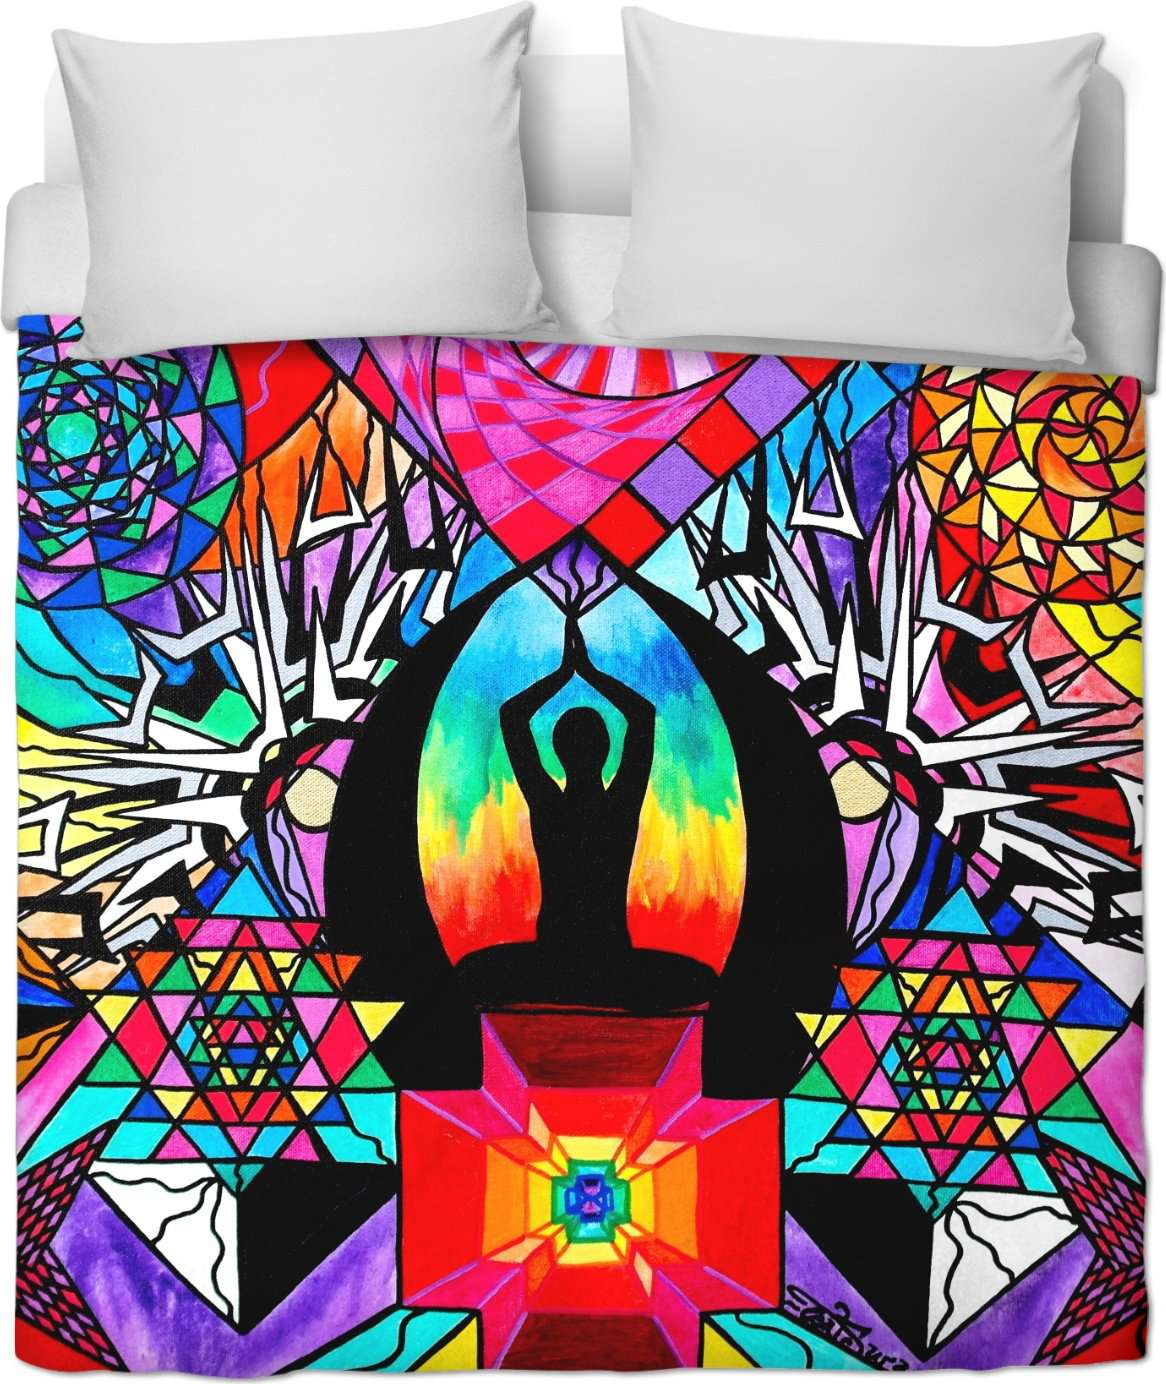 Meditation Aid - Duvet Cover